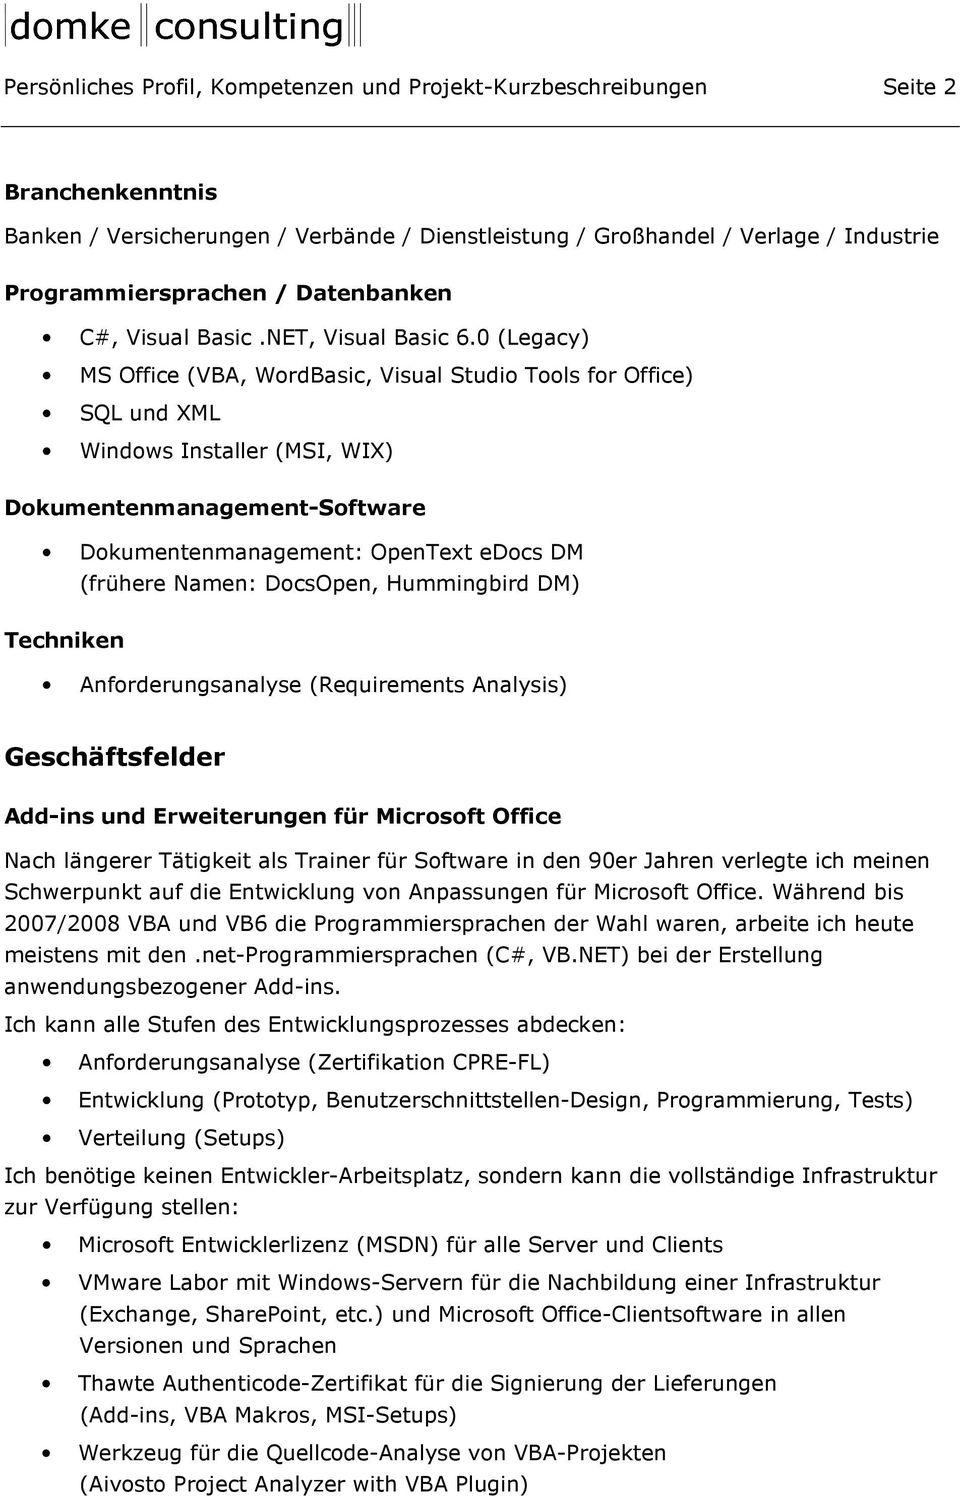 0 (Legacy) MS Office (VBA, WordBasic, Visual Studio Tools for Office) SQL und XML Windows Installer (MSI, WIX) Dokumentenmanagement-Software Dokumentenmanagement: OpenText edocs DM (frühere Namen: